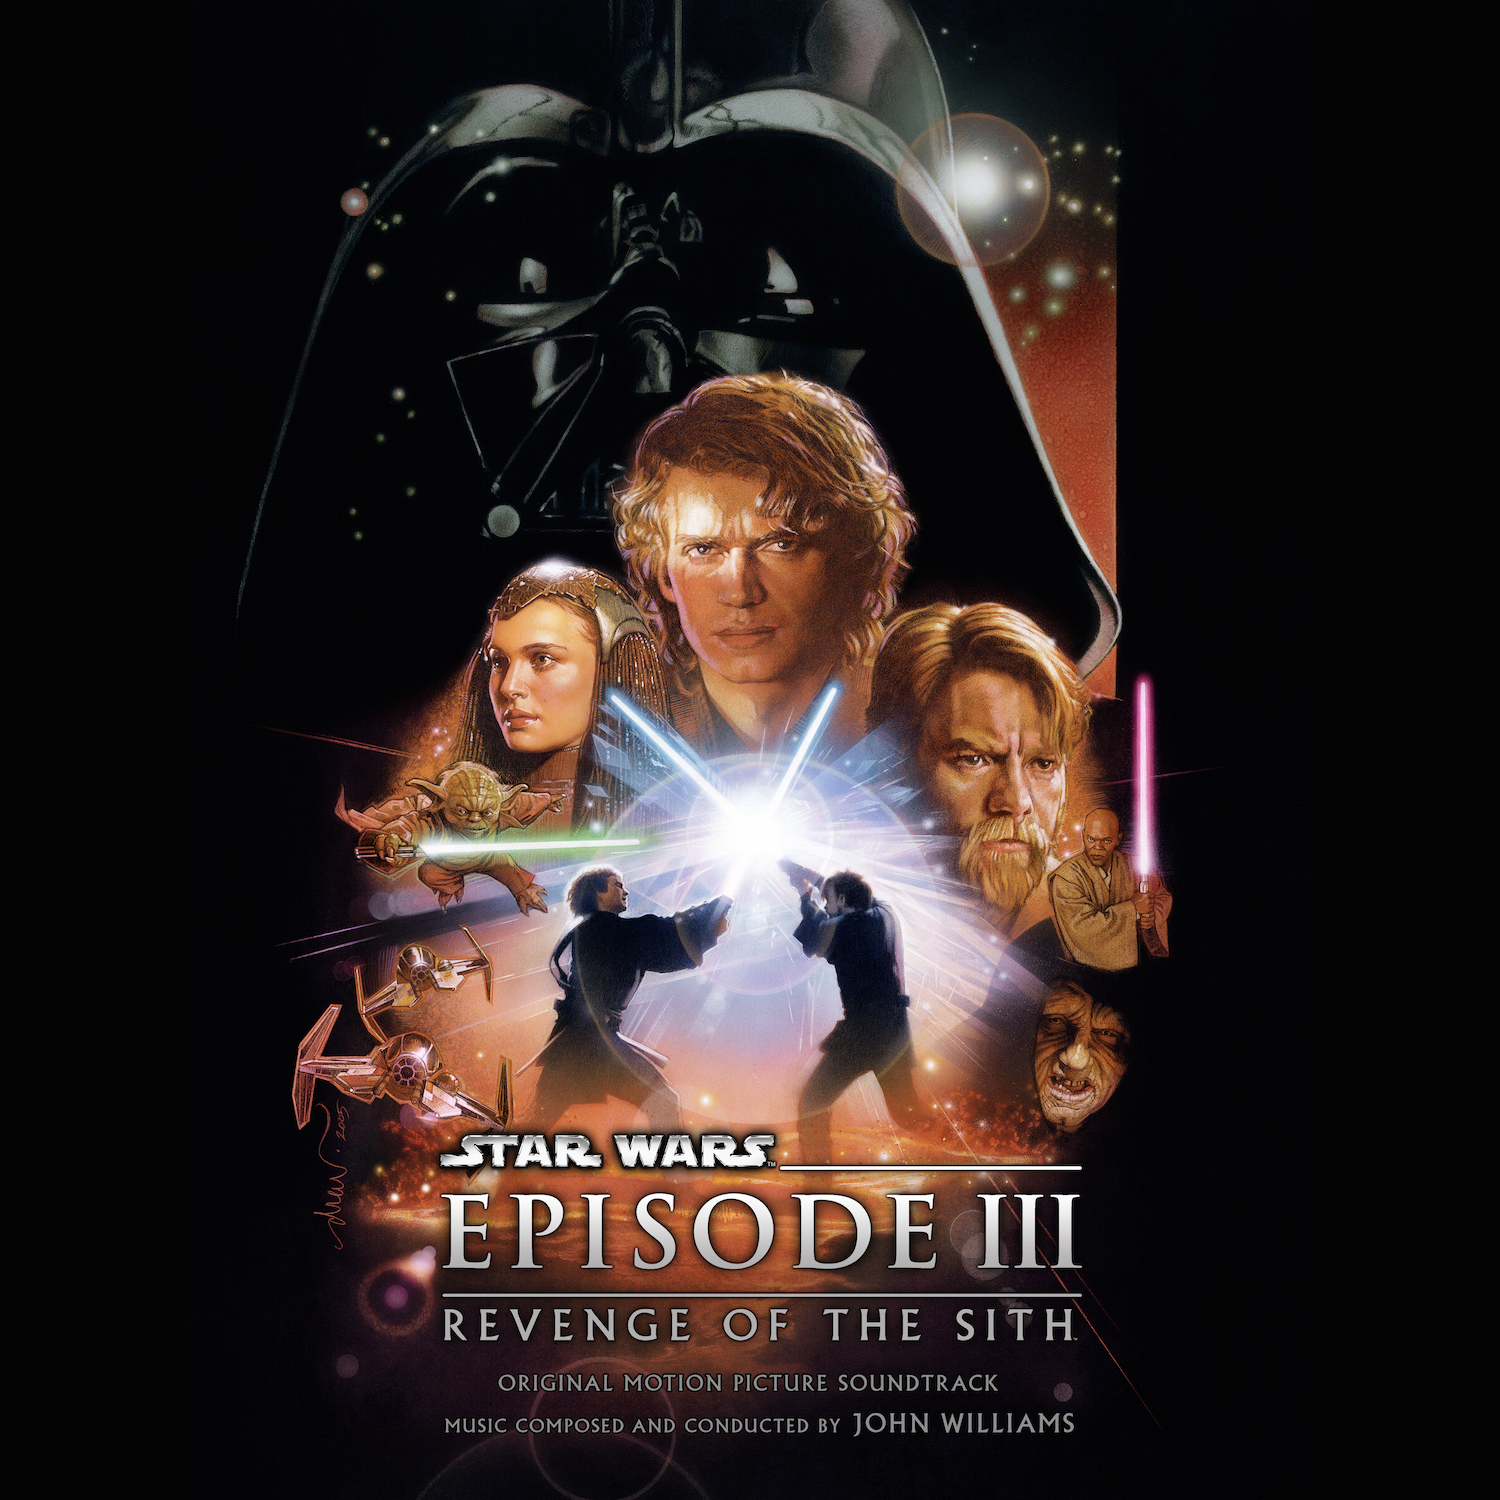 Star wars episode iii revenge of the sith dvd cover dvd covers.